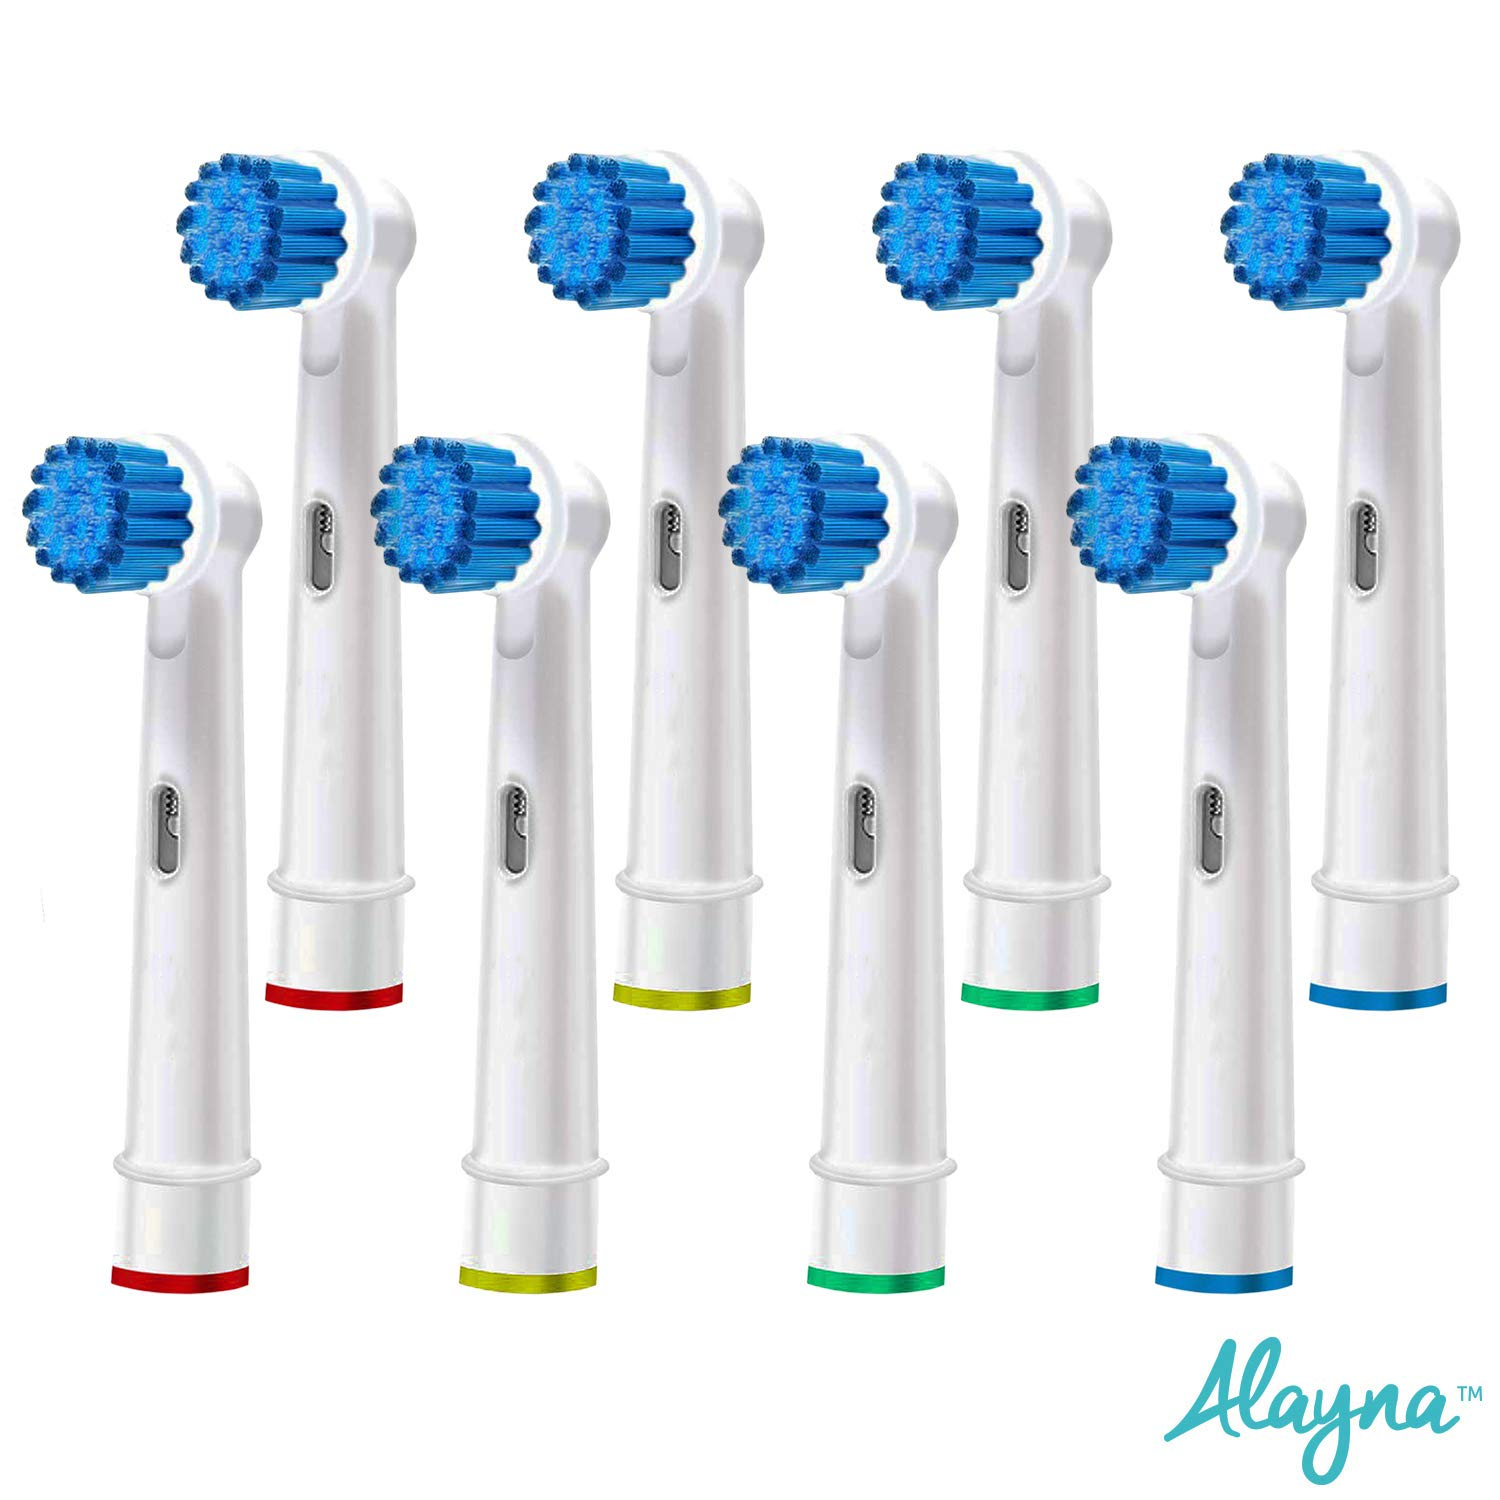 Replacement Brush Heads Compatible With Oral B- Sensitive Gum Care Electric Toothbrush Heads - Pk of 8 Generic Sensitive Clean Brushes- Fits Oral-b Braun 7000, Pro 1000, 9600, 500, 3000, 8000